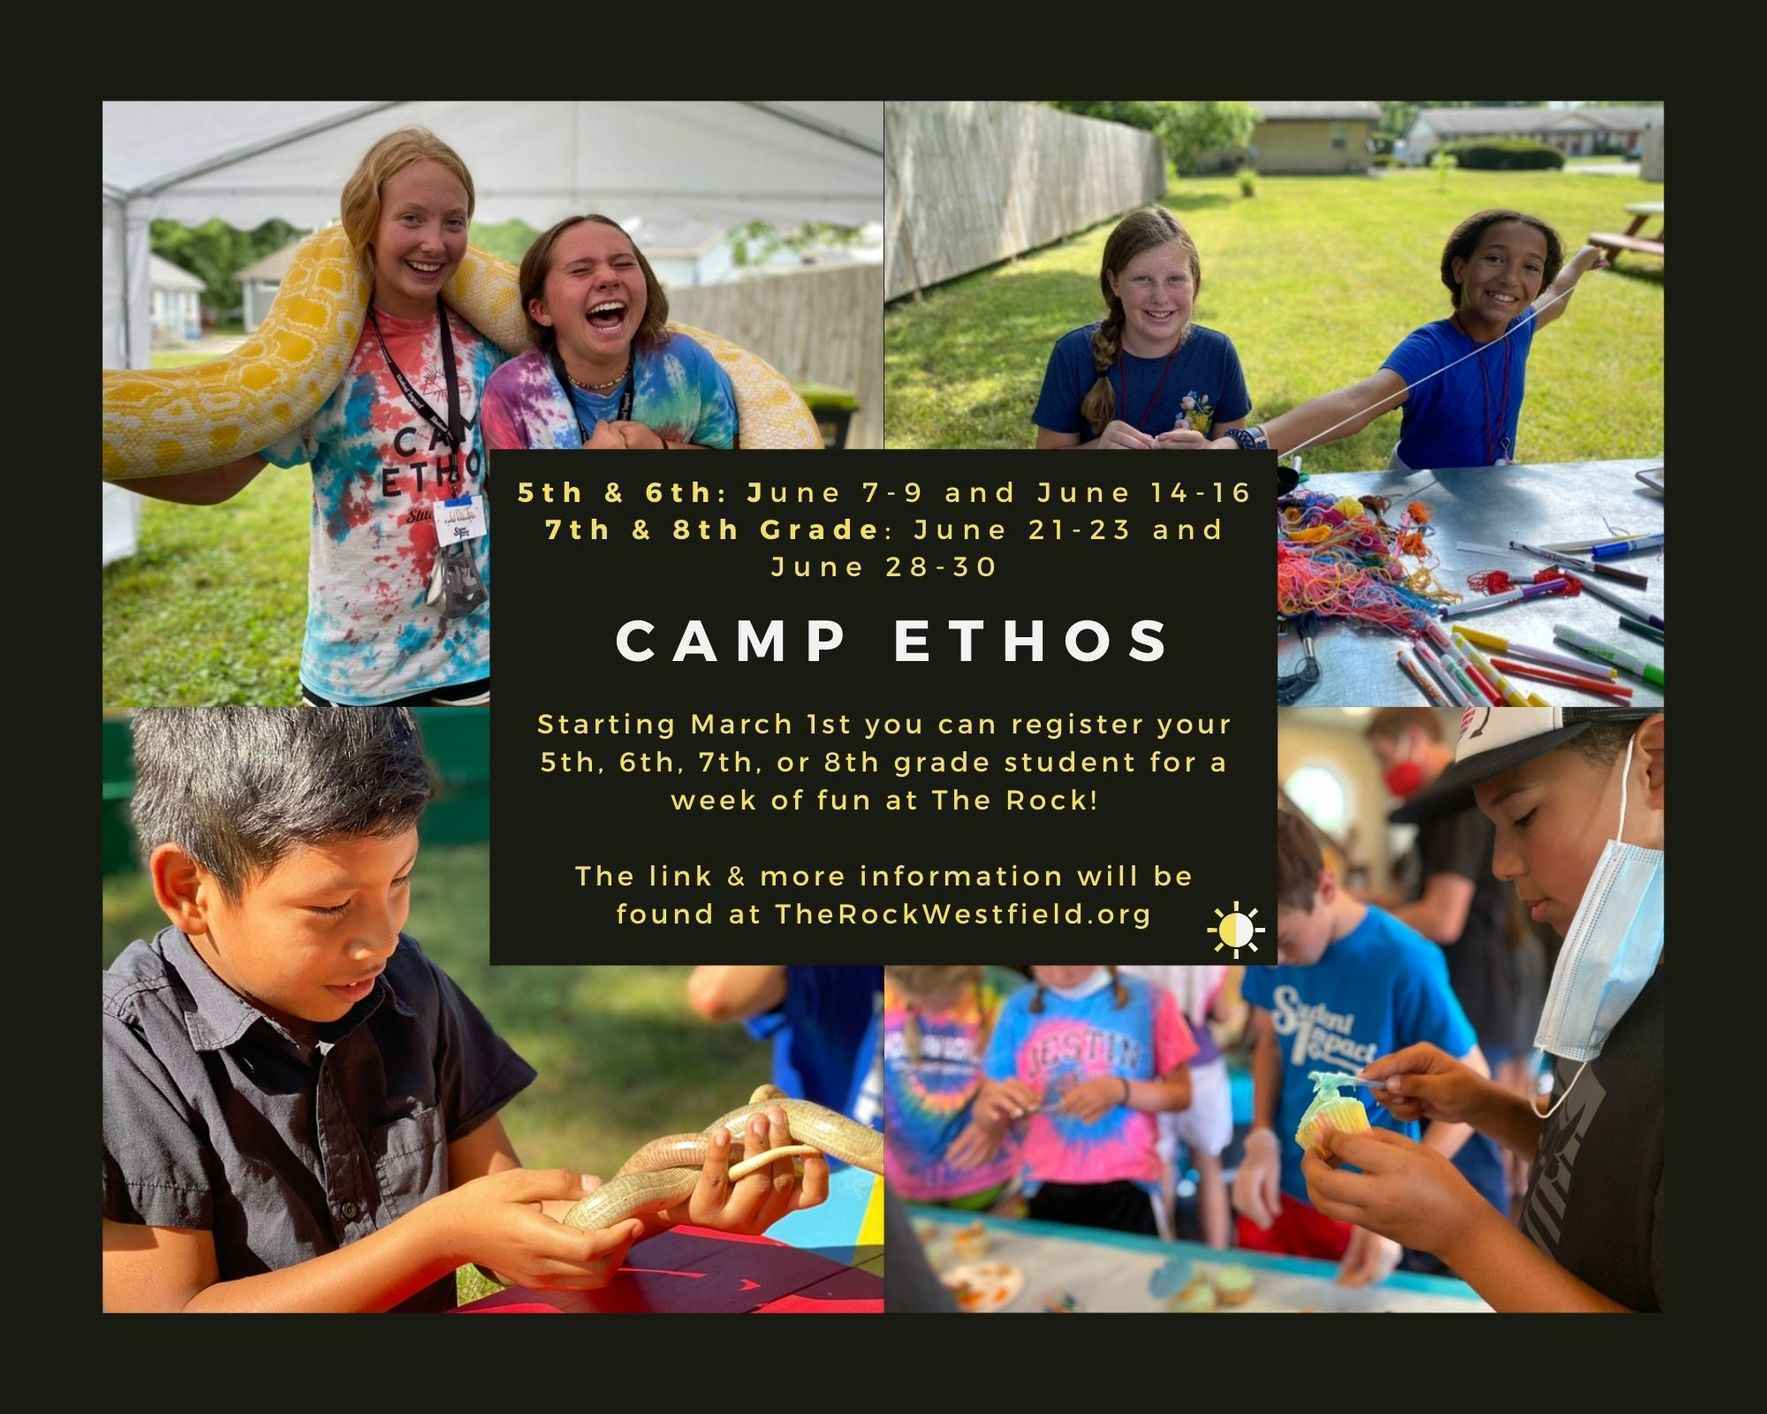 Camp Ethos June 28-30, 2021 Incoming 7th and 8th graders image